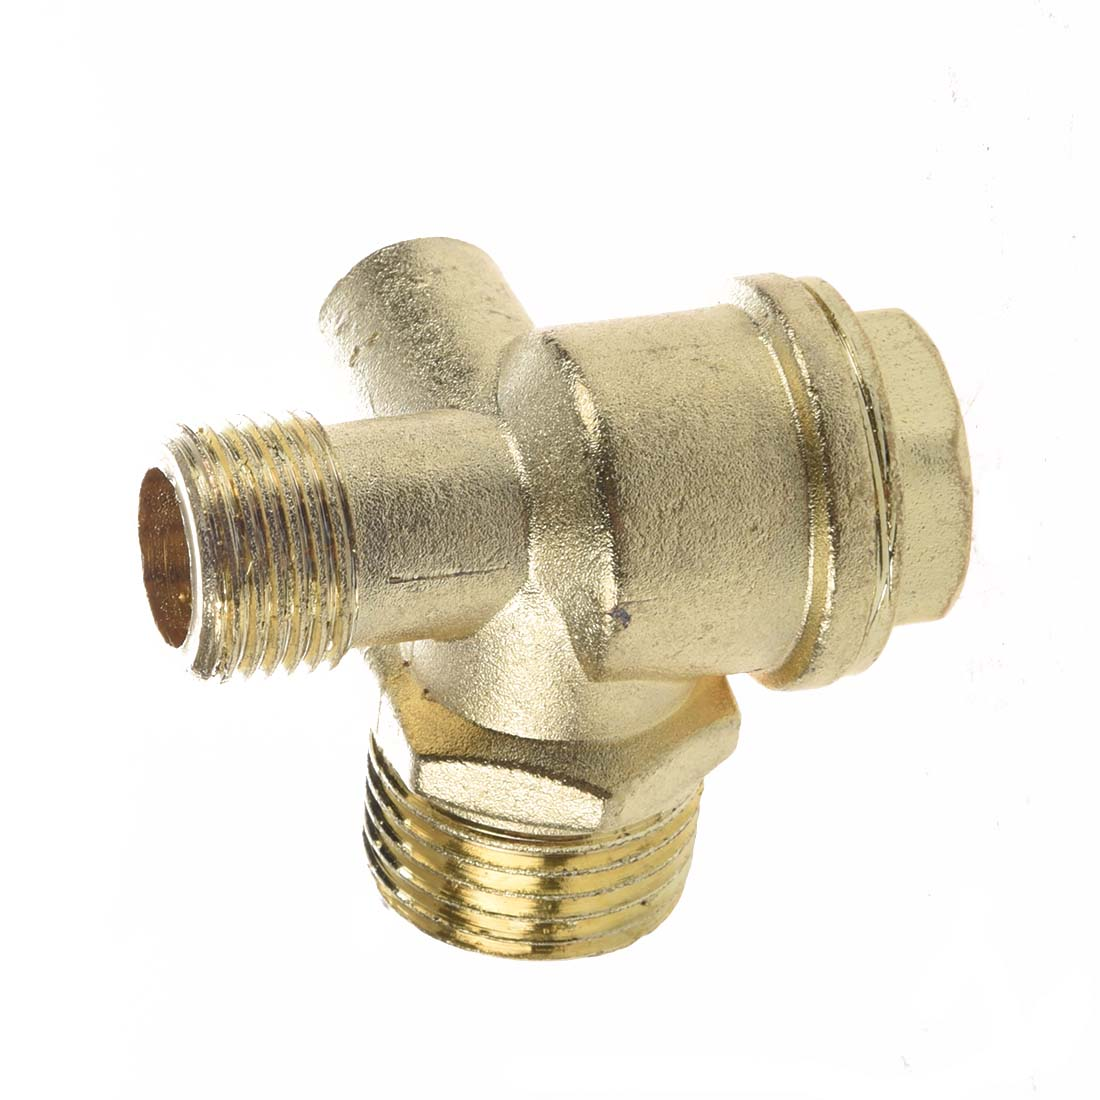 DSHA New Hot New Gold Tone 3/8 Female Thread Tube Connector Air Compressor Check Valve 3 8 check valve with solder connection for bus air conditioner and refrigeration truck replace sporlan check valve